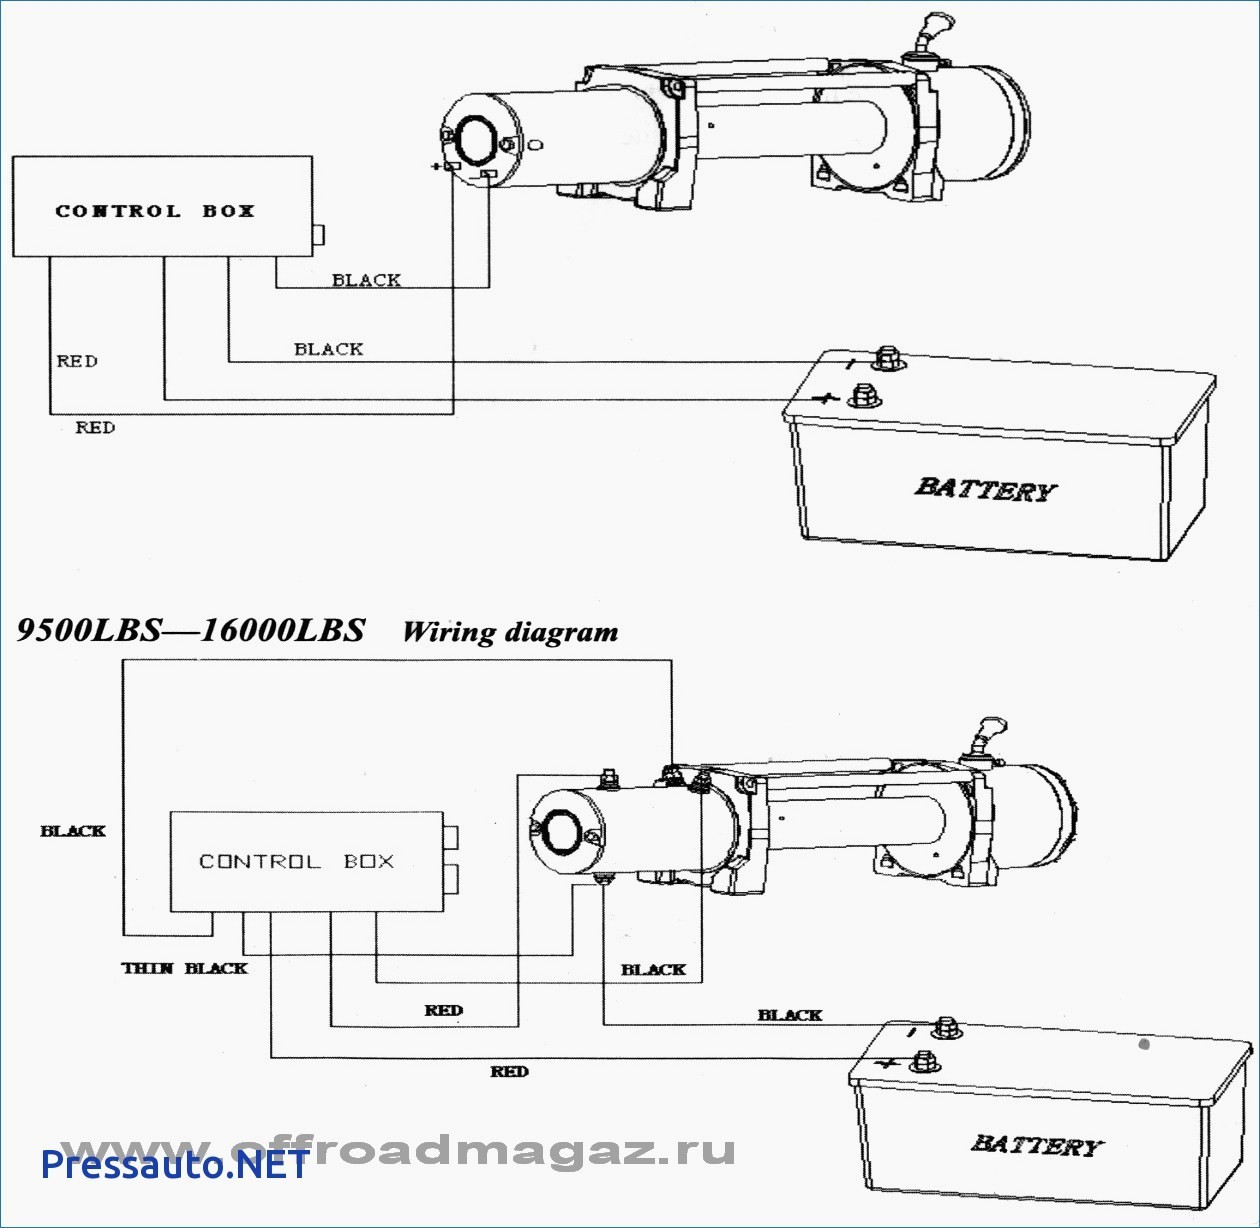 warn a2000 winch wiring diagram best of wiring diagram image